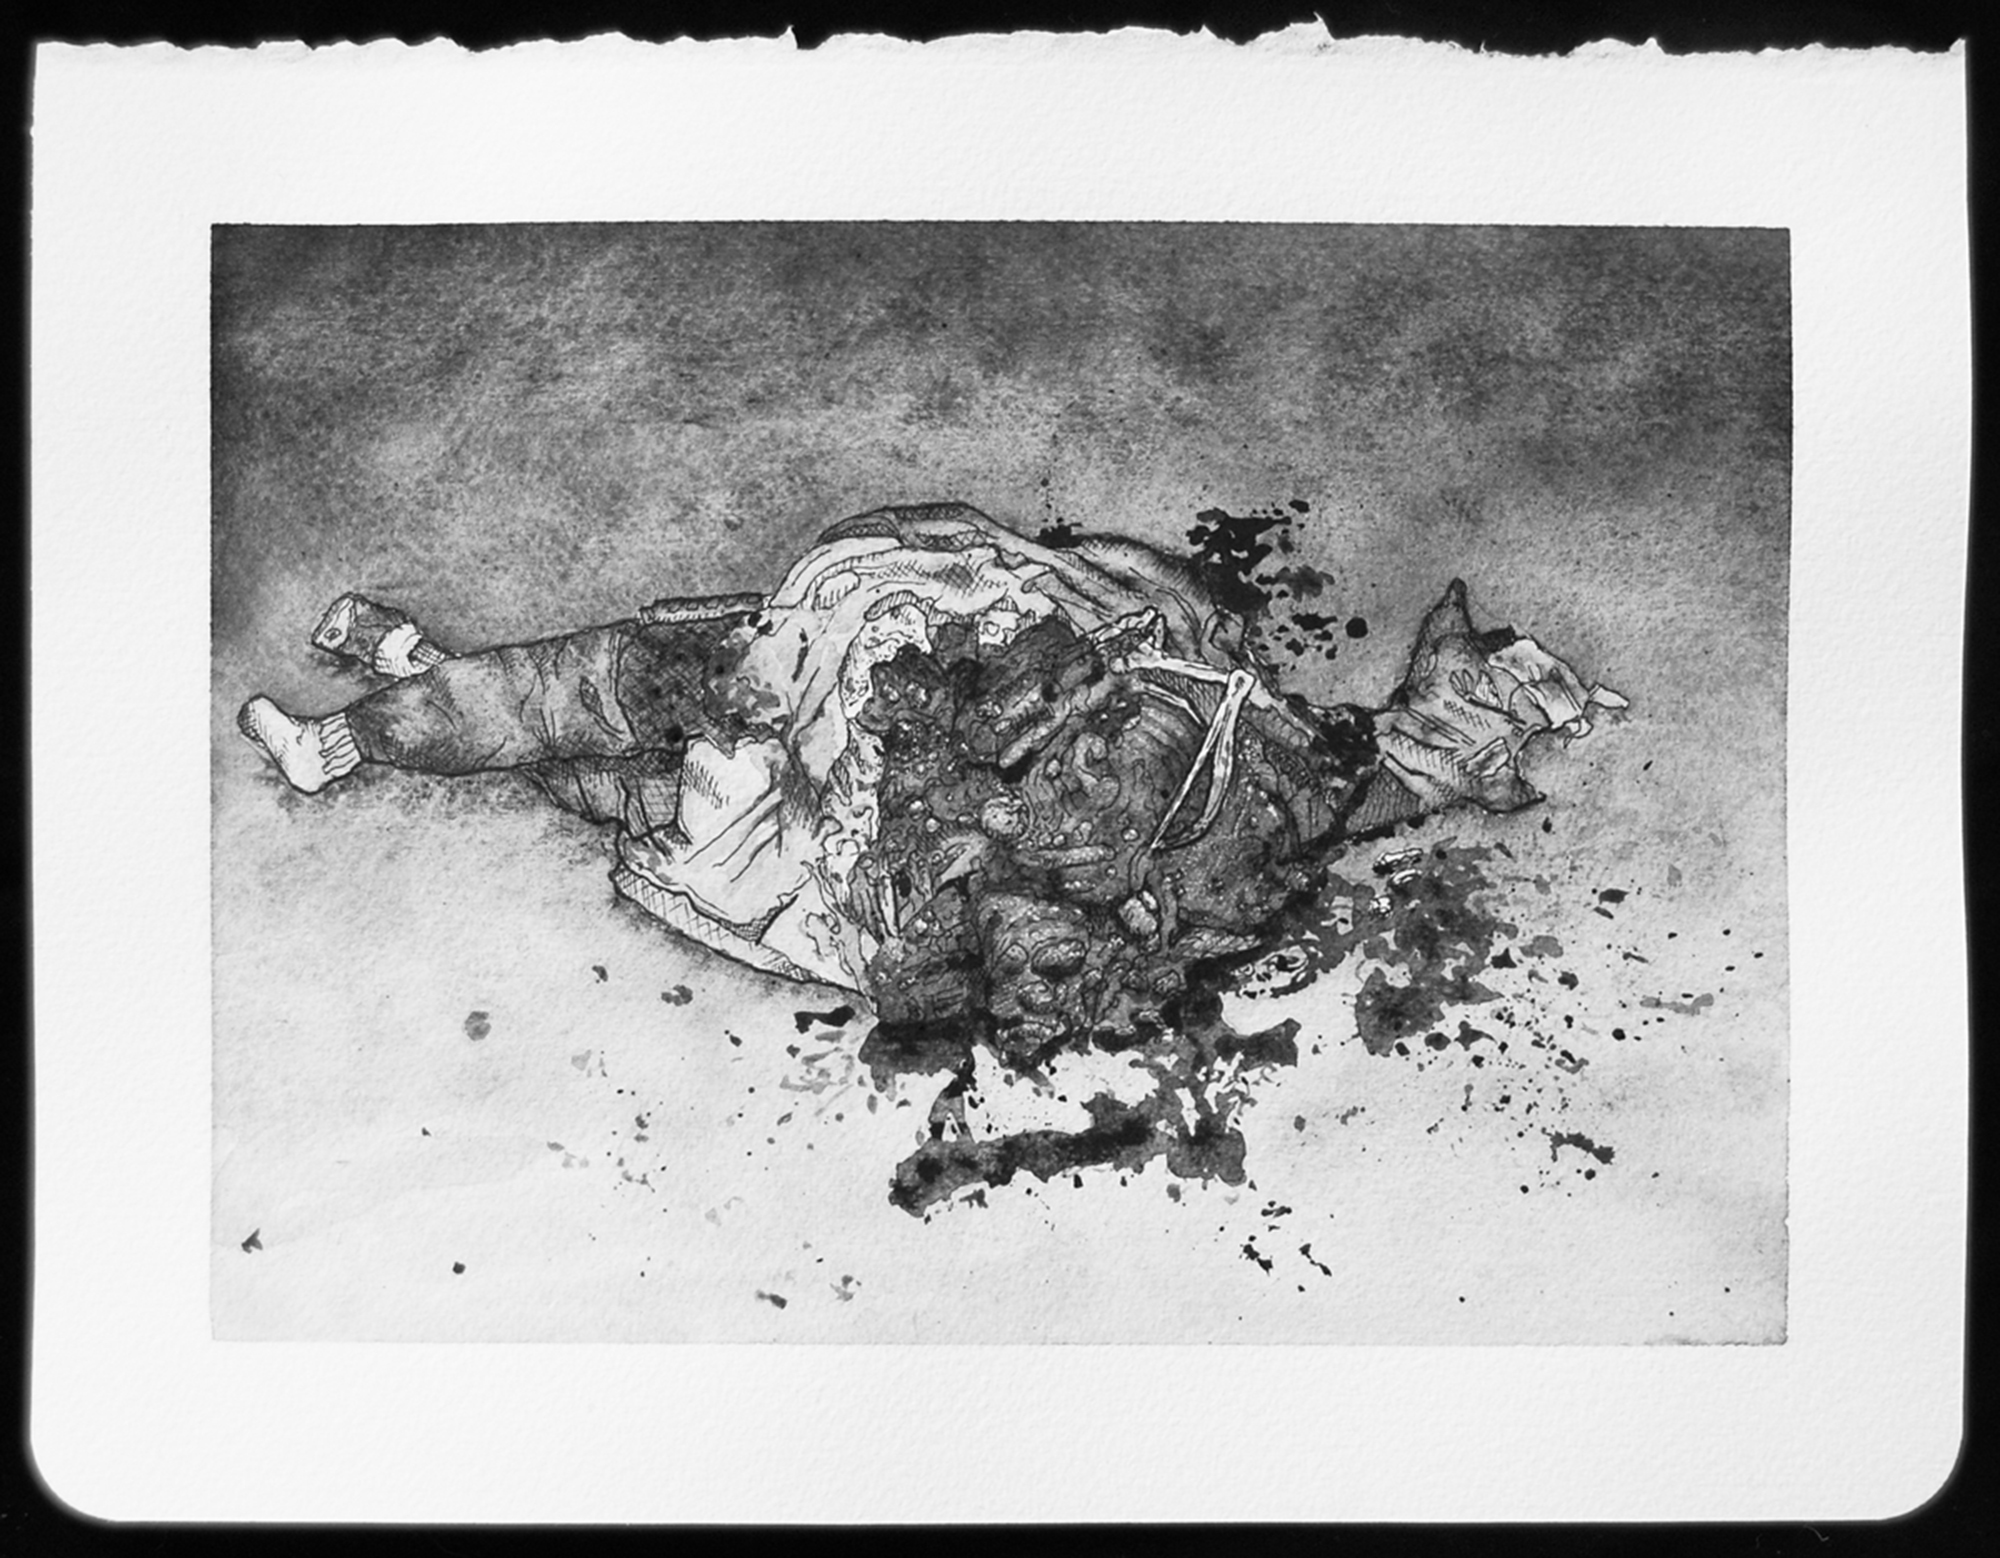 DEATH_076.jpg,2010  |  8.25 x 11 inches  |  archival ink and gouache on paper